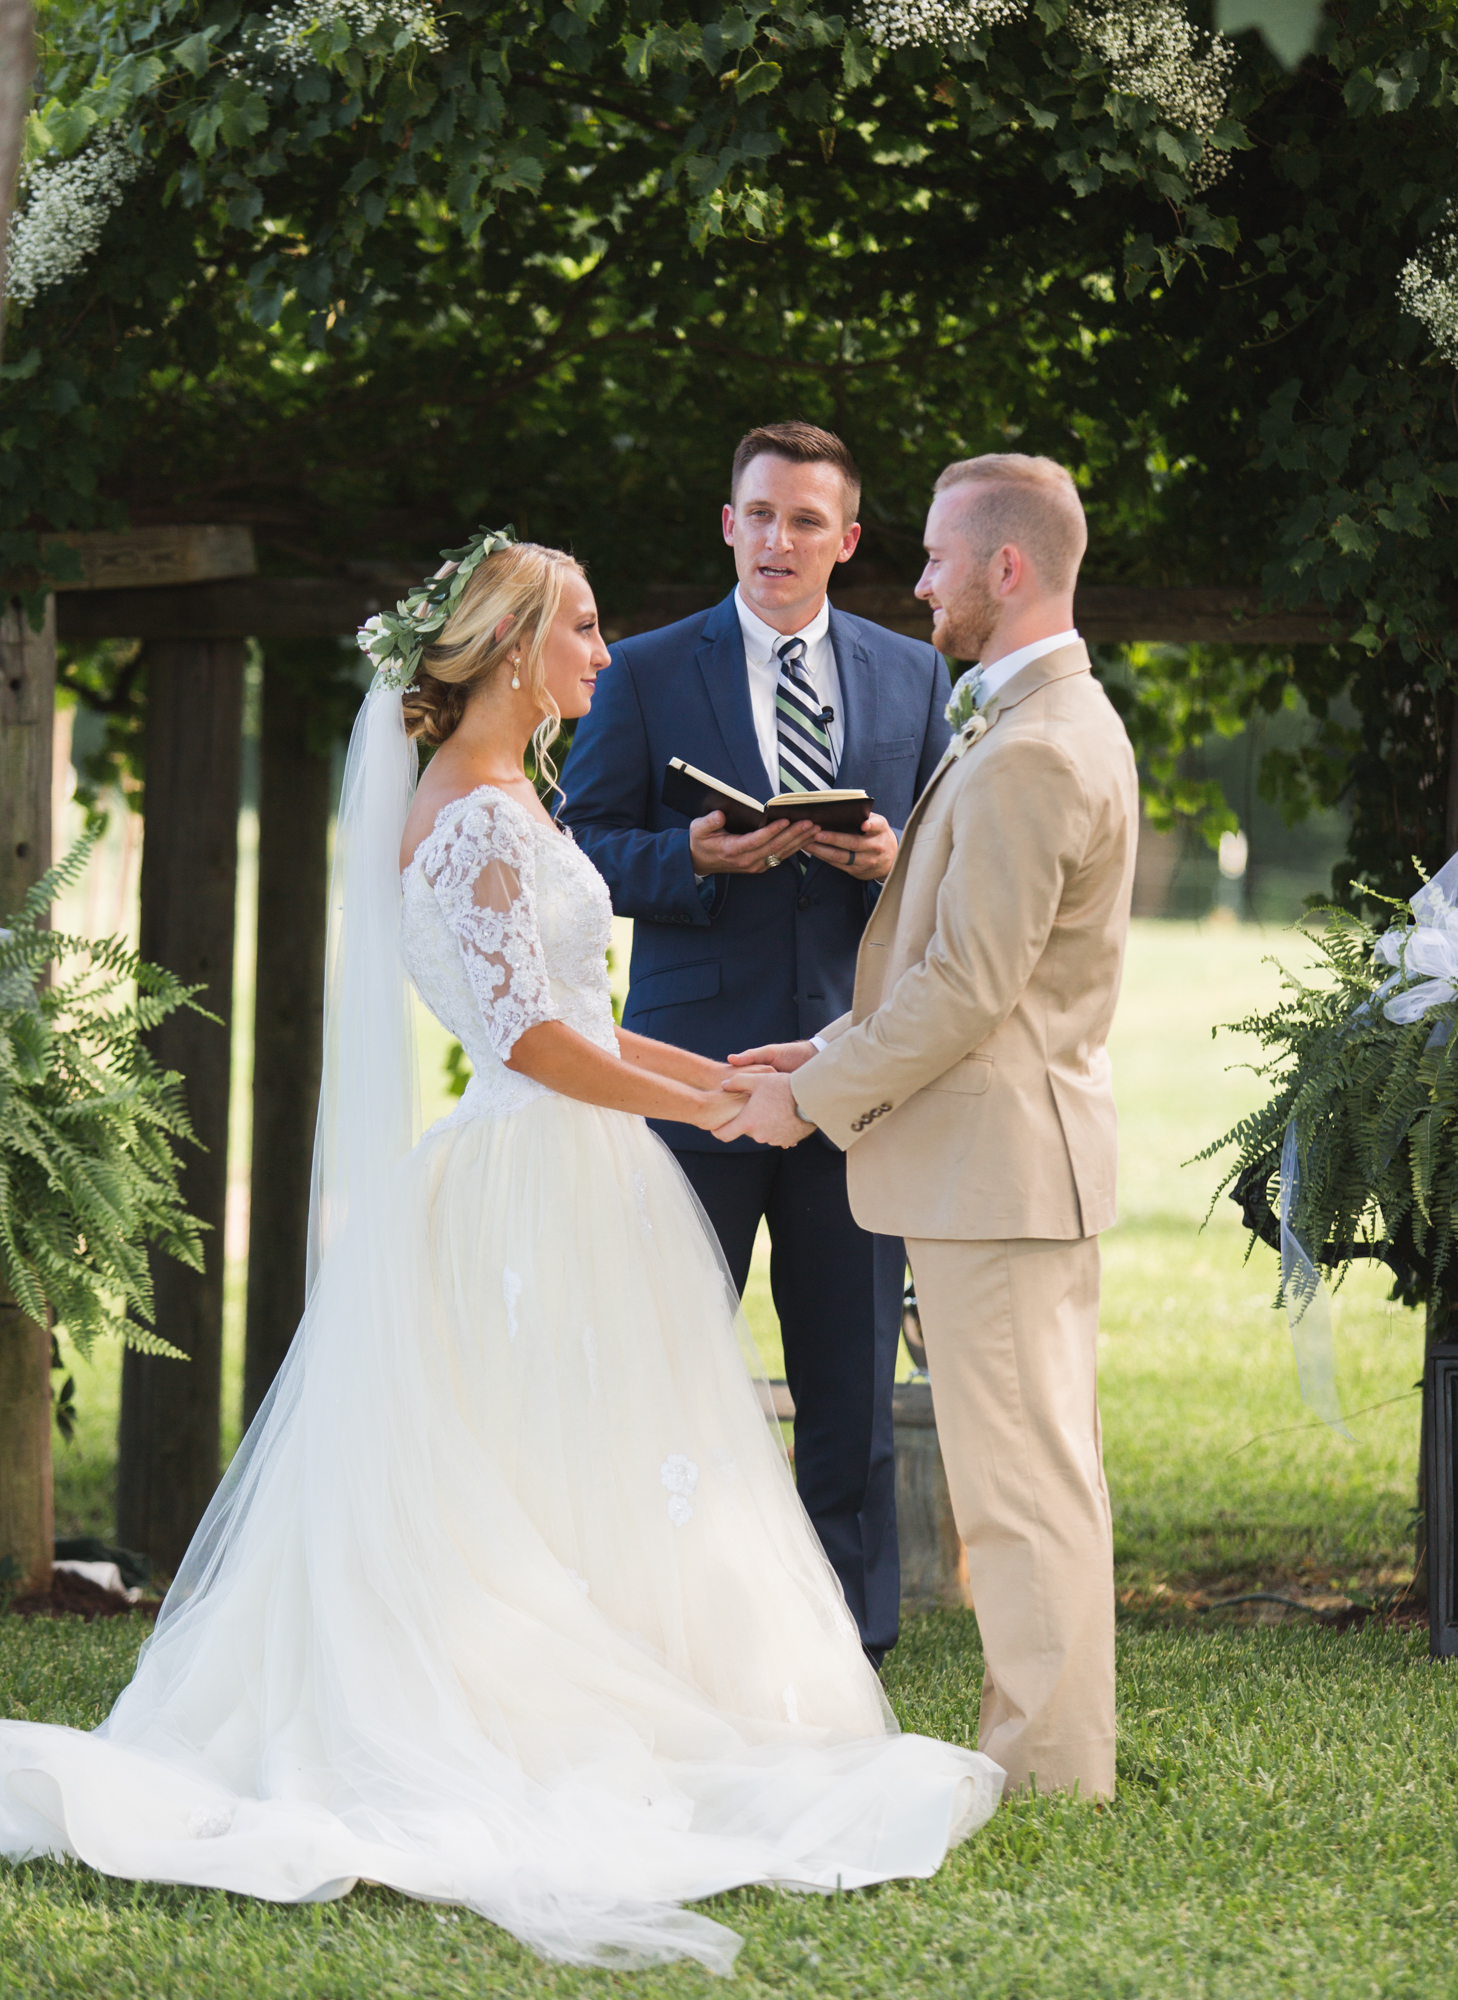 lauren+lucas rock hill south carolina wedding-6910.jpg